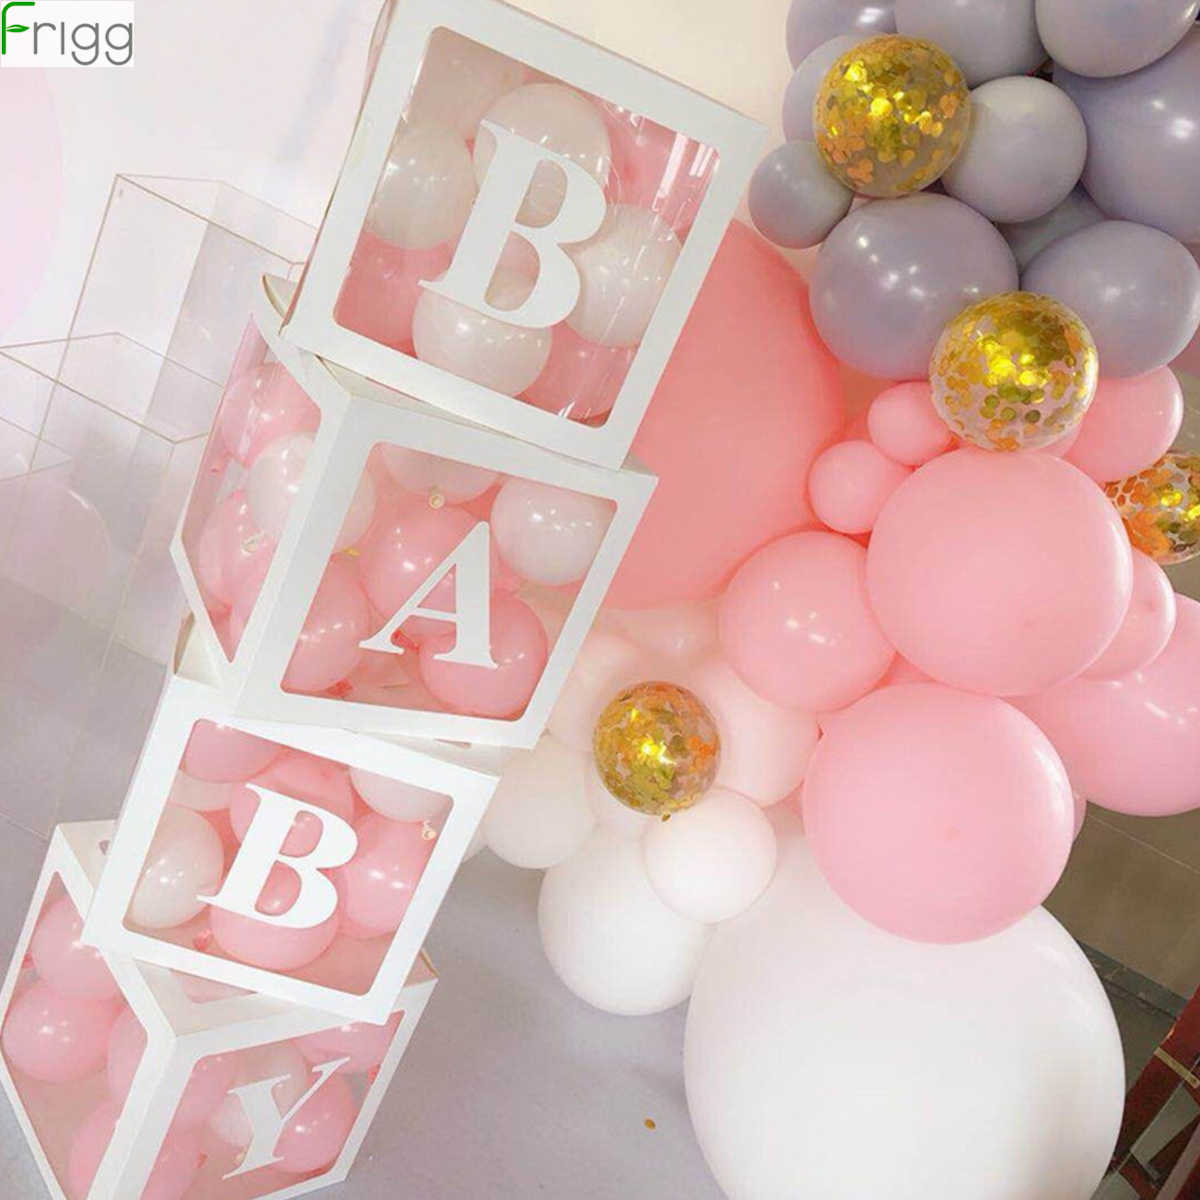 Baby Shower Jongen Meisje Transparante Doos Baby Shower Decoratie Baby Doop Verjaardag Party Decor Kartonnen Doos Baby Shower Gift